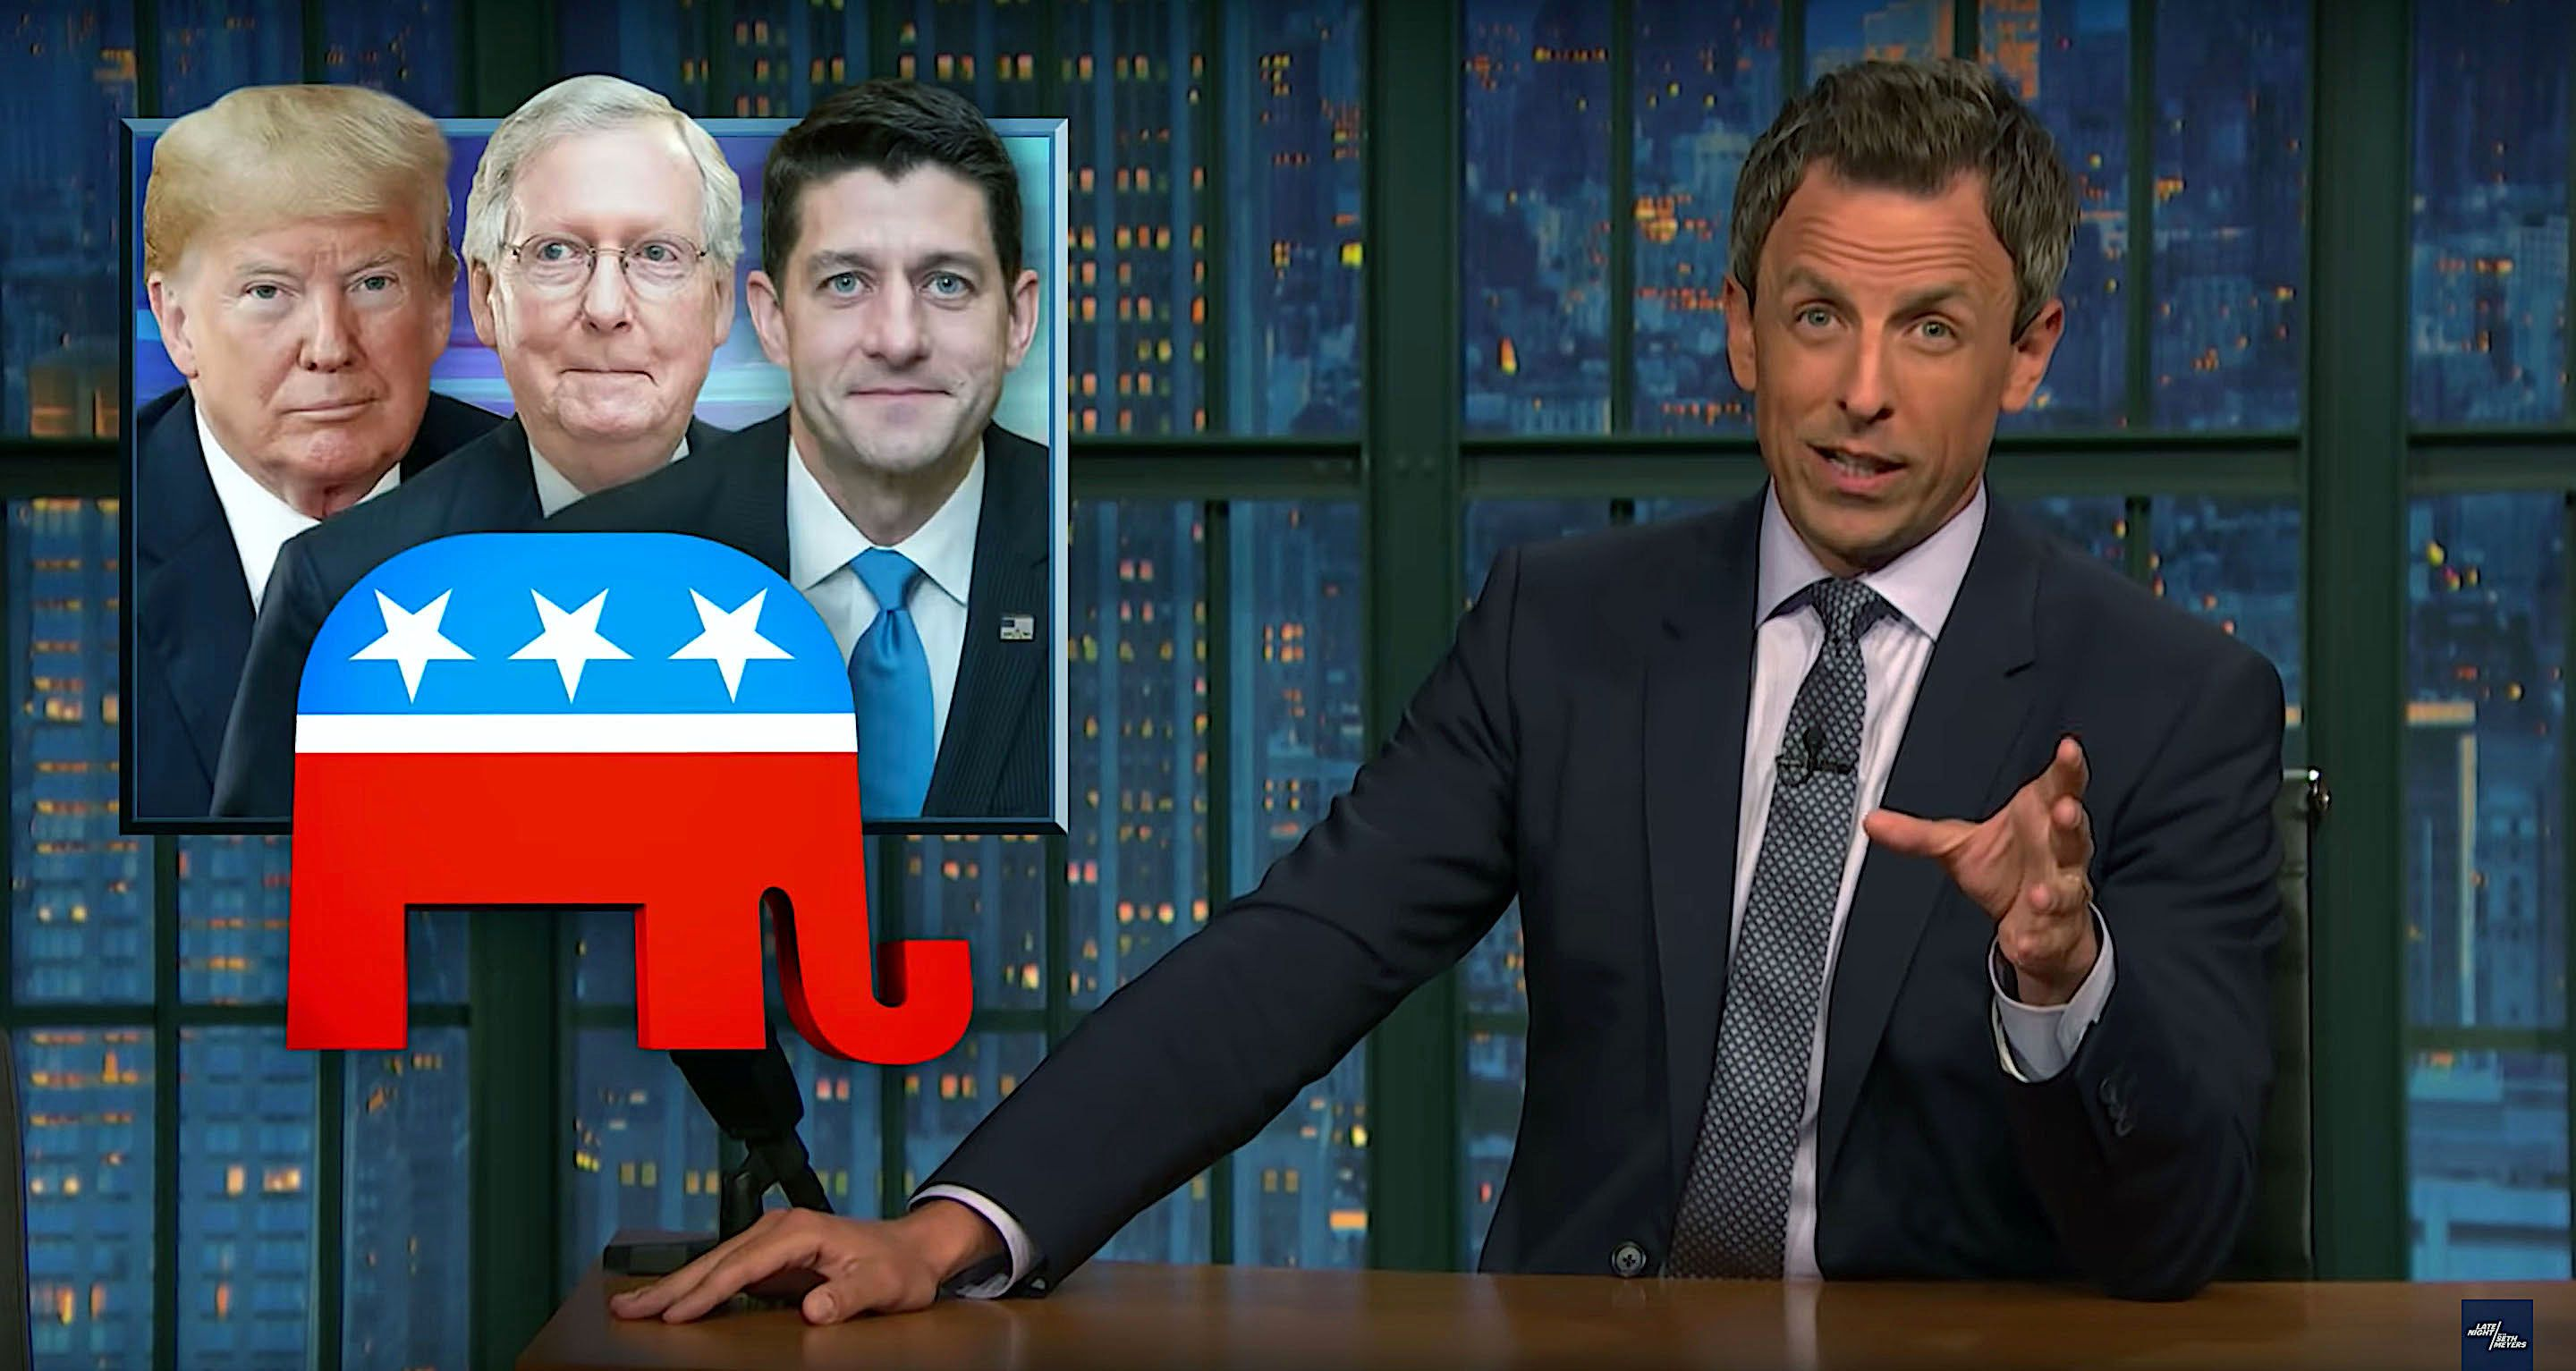 Seth Meyers: 'What Do You Mean You Can't Protect Stupid?'